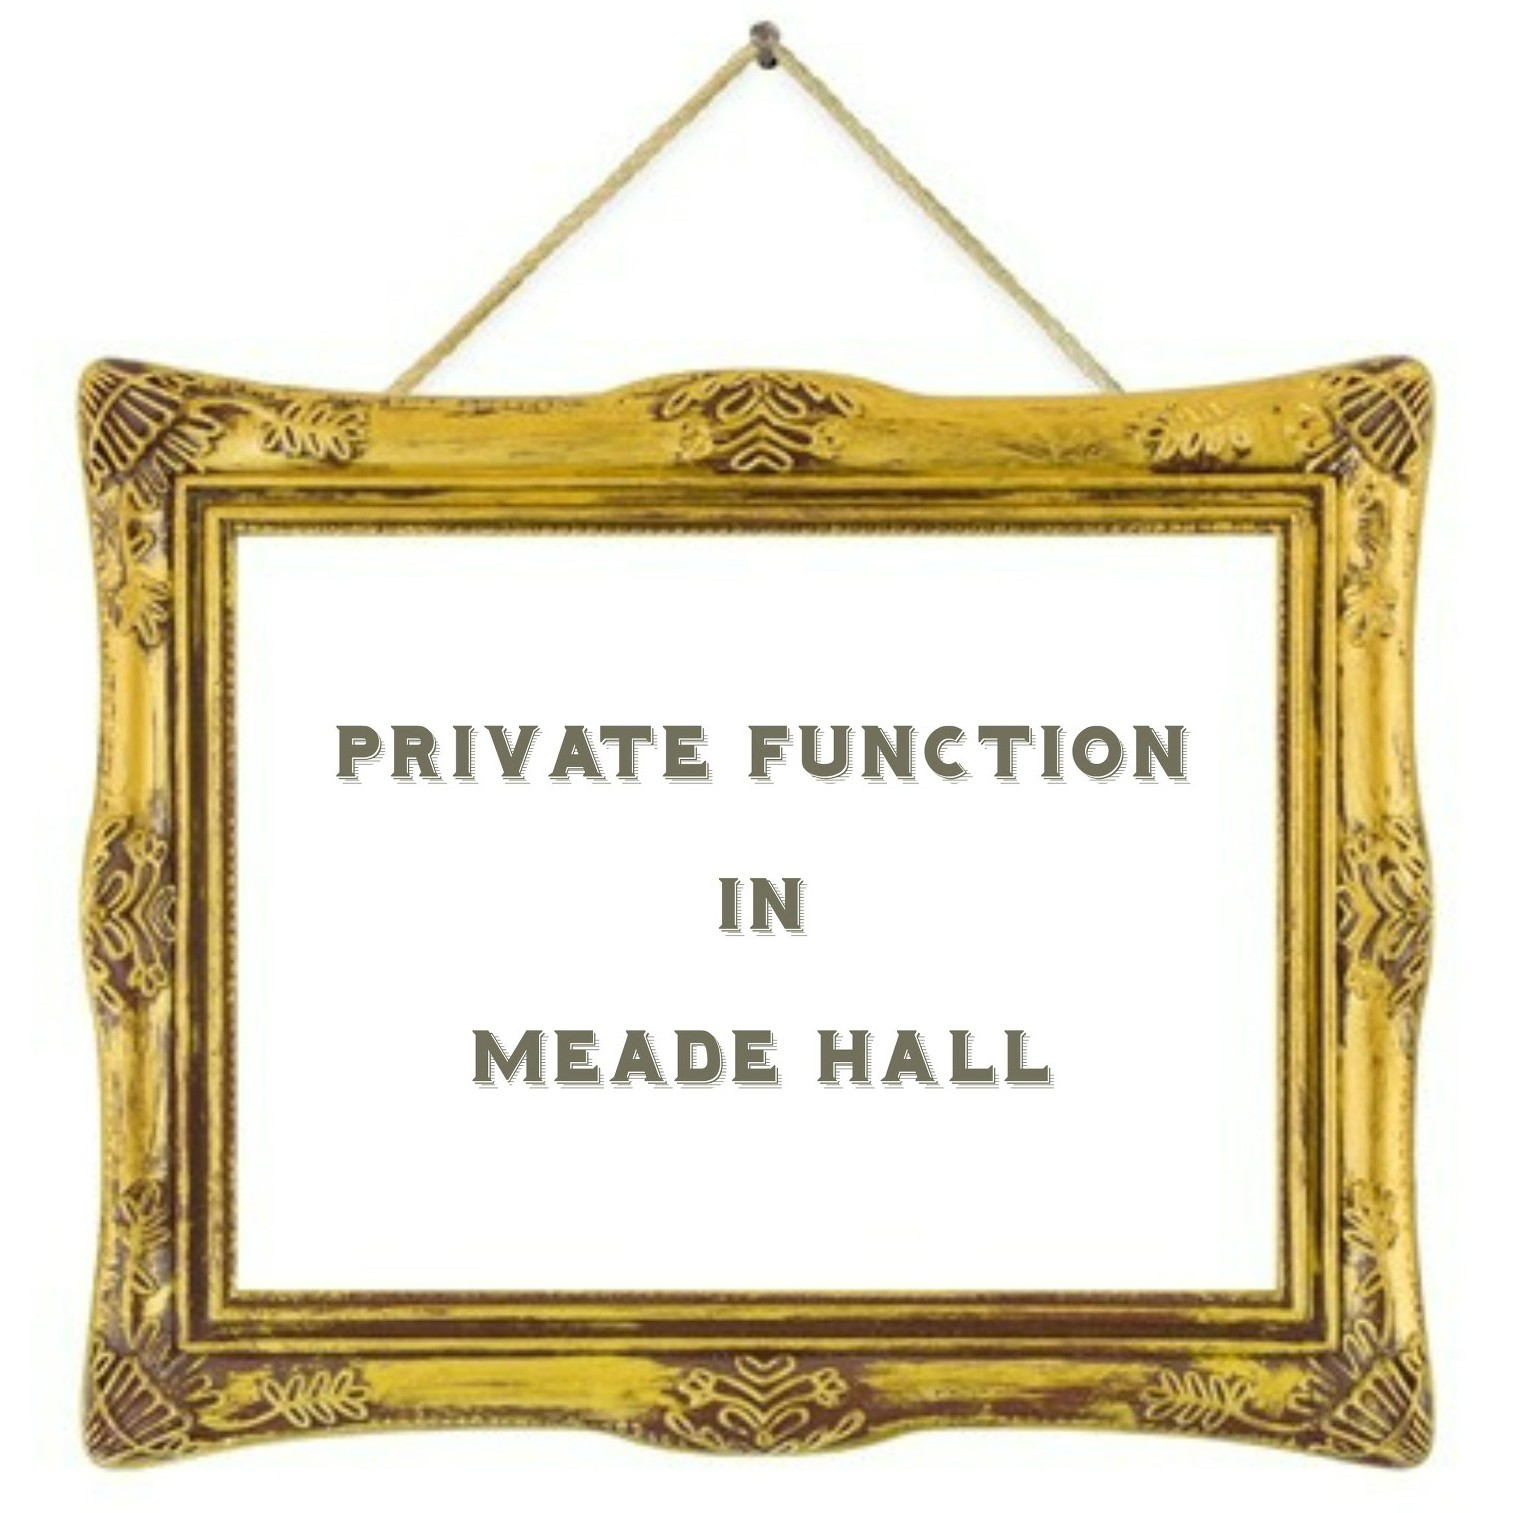 Image for Private Function in Meade Hall